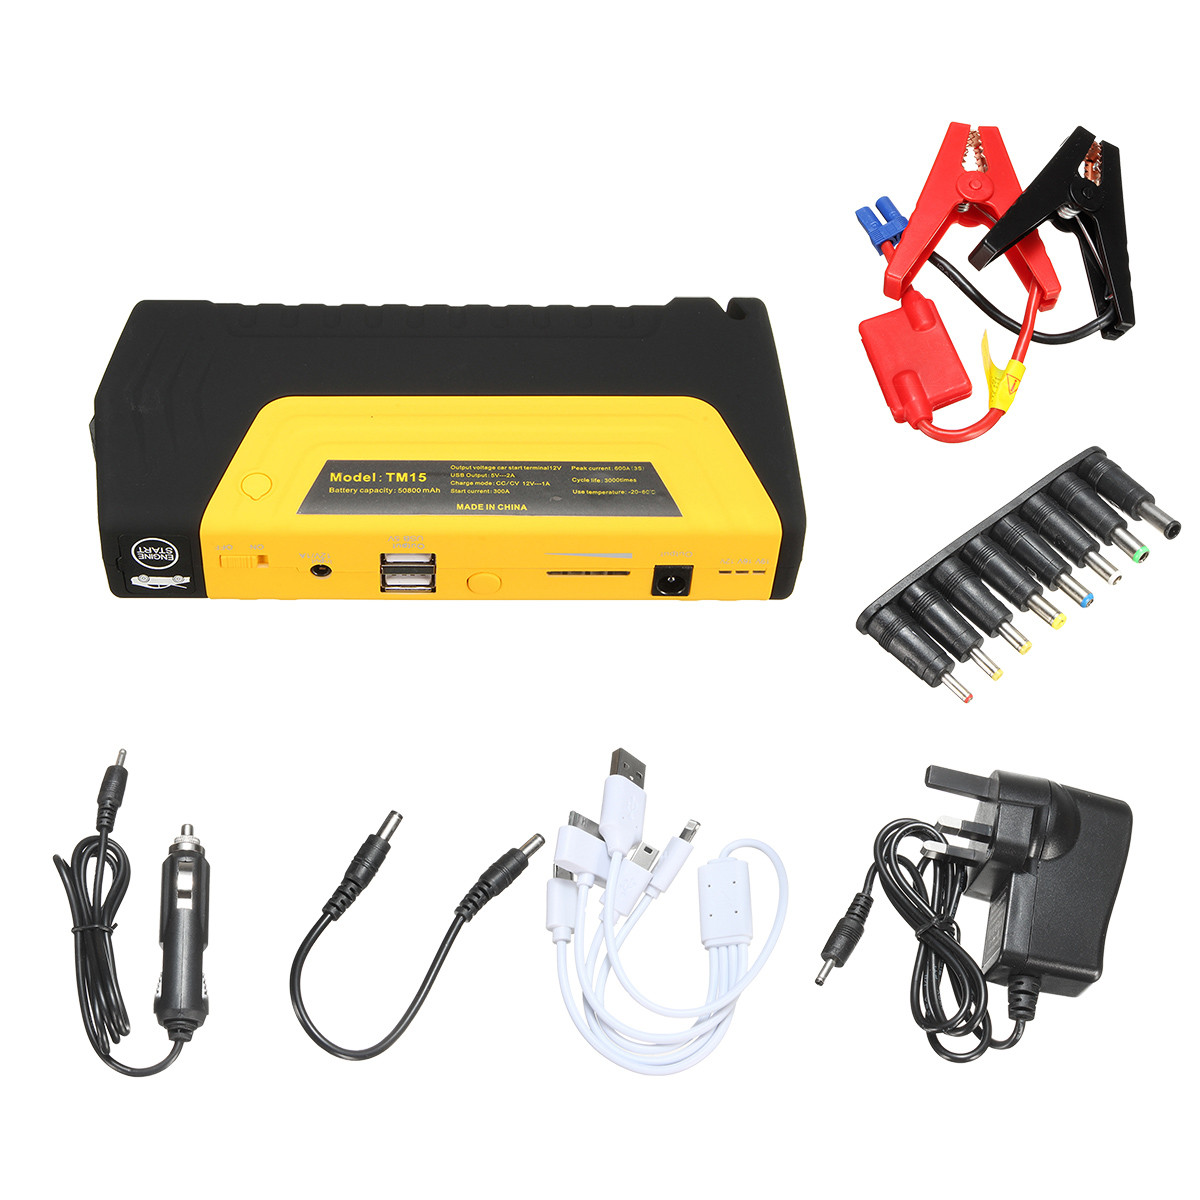 50800mAh LED Dual USB Car Jump Starter Booster Portable Power Bank Backup Charger